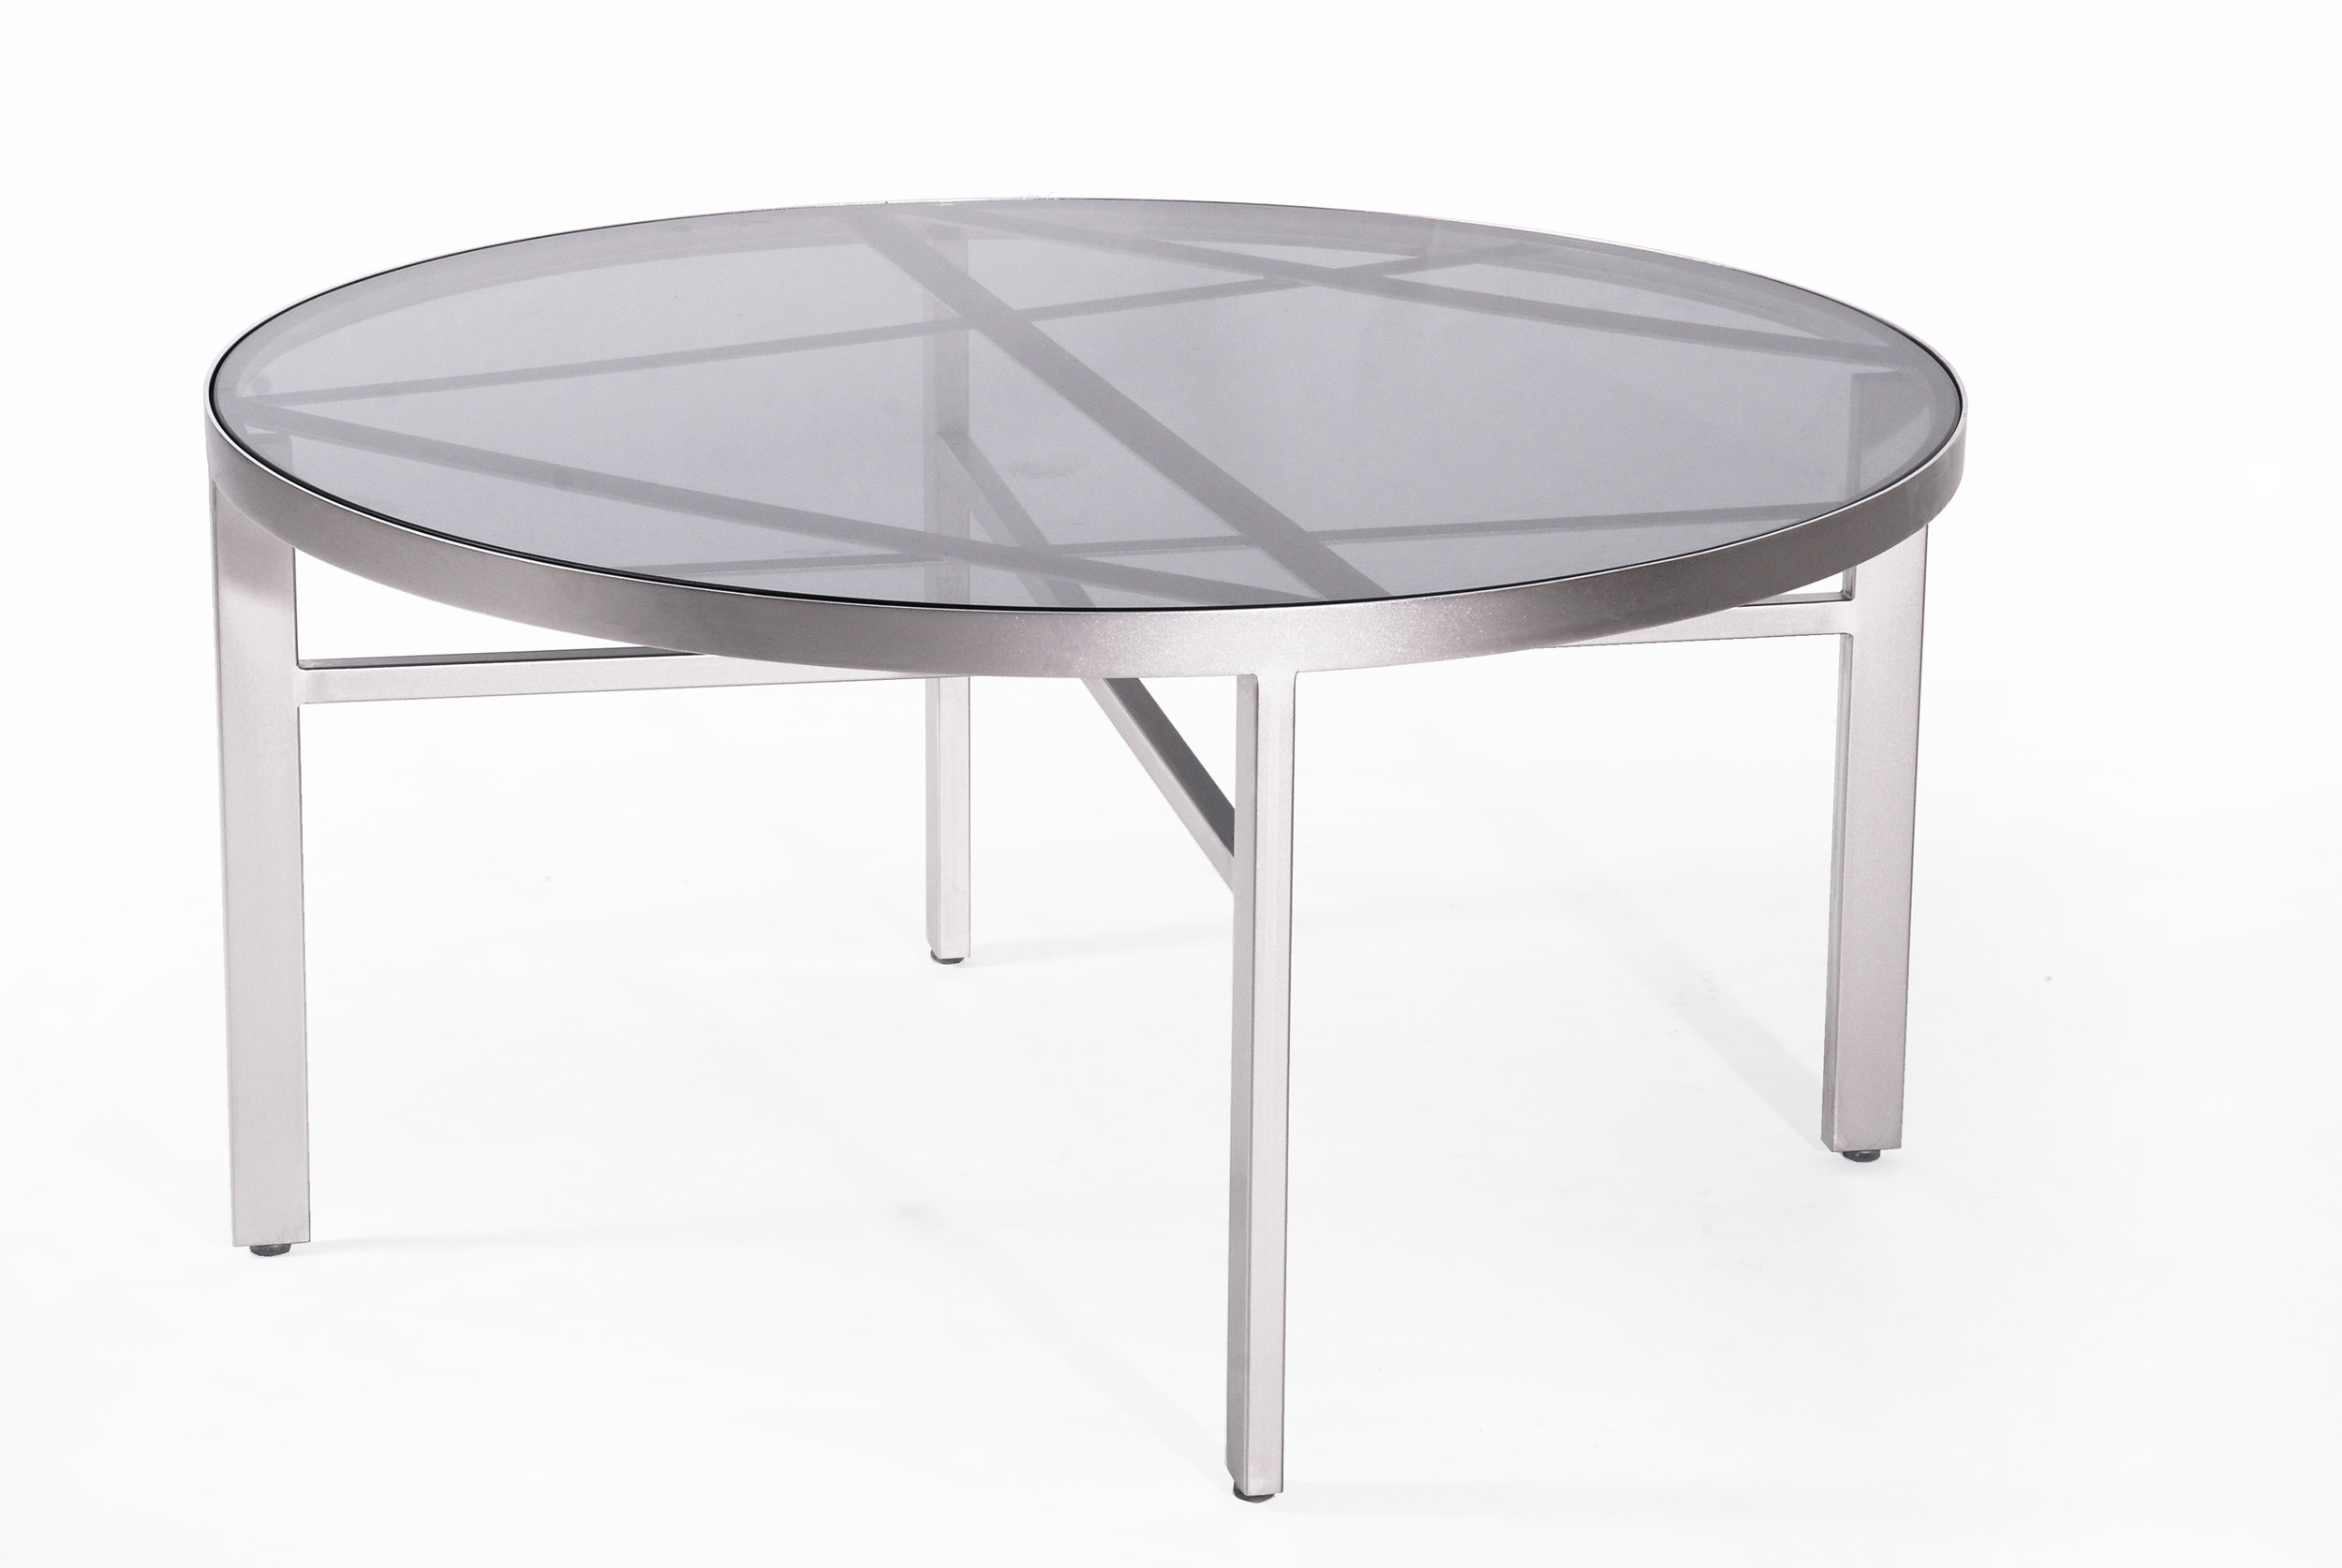 BOTANIC round coffee table BT 8355.jpg